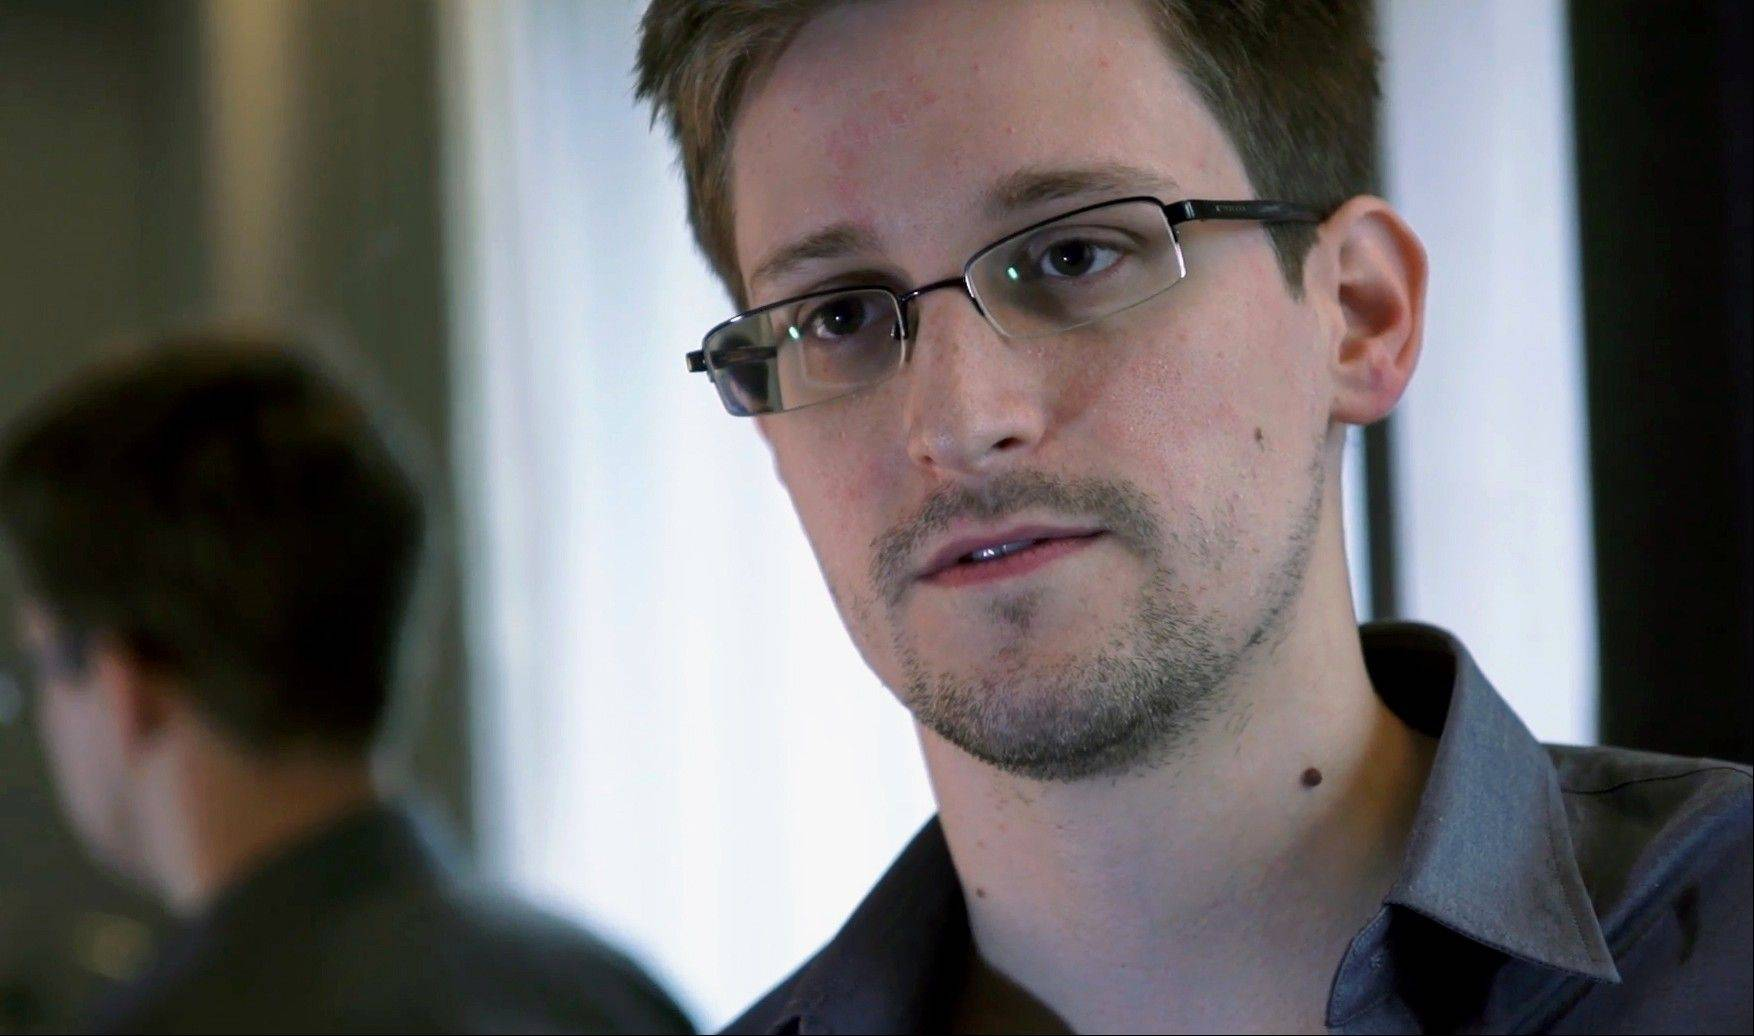 Posts to online blogs and forums, public records and interviews with Edward Snowden�s neighbors, teachers and acquaintances reveal someone who prized the American ideal of personal freedom but became disenchanted with the way government secretly operates in the name of national security.